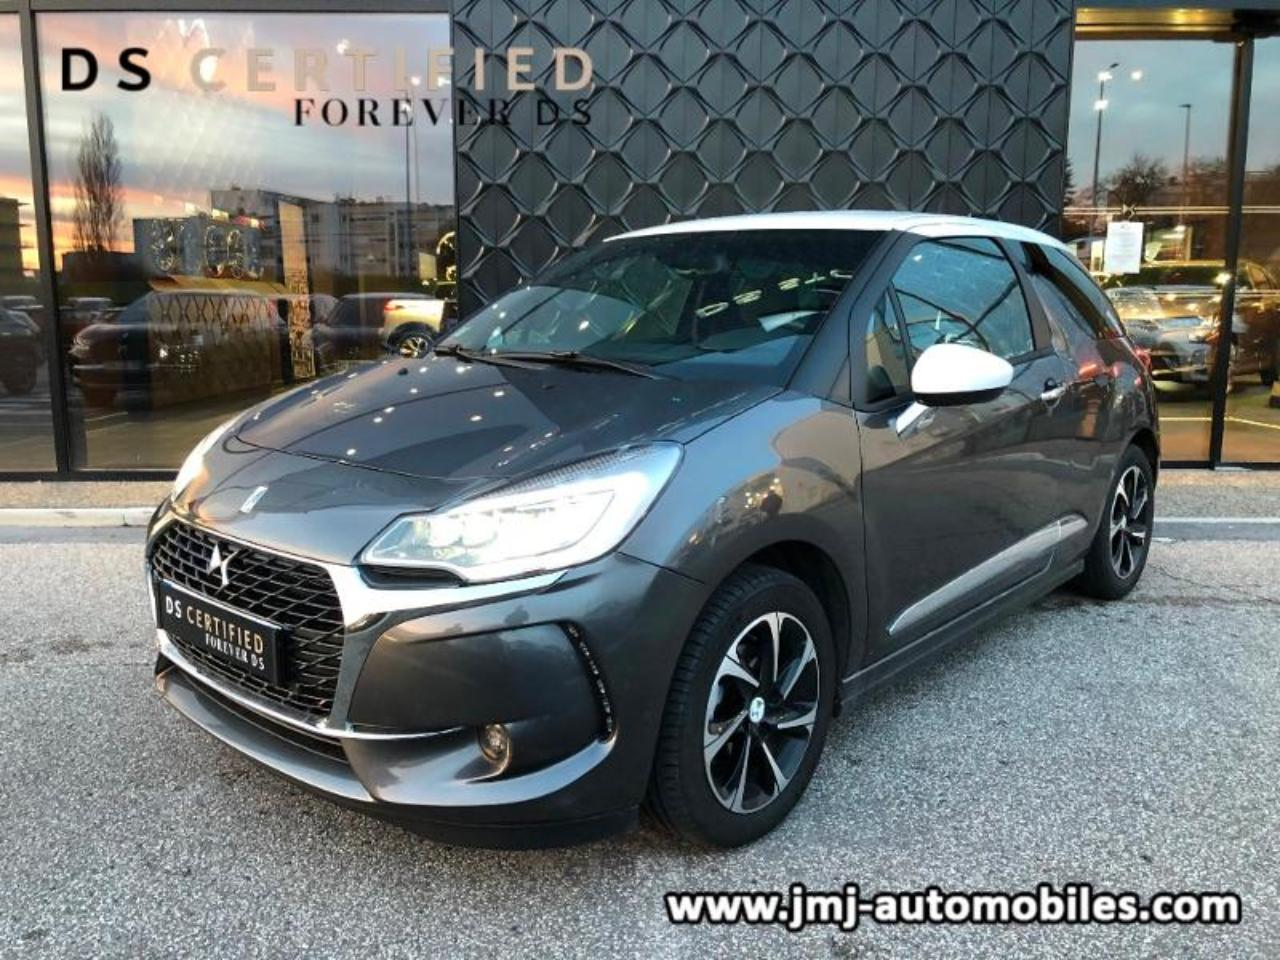 Ds DS 3 PureTech 110 Automatique So Chic